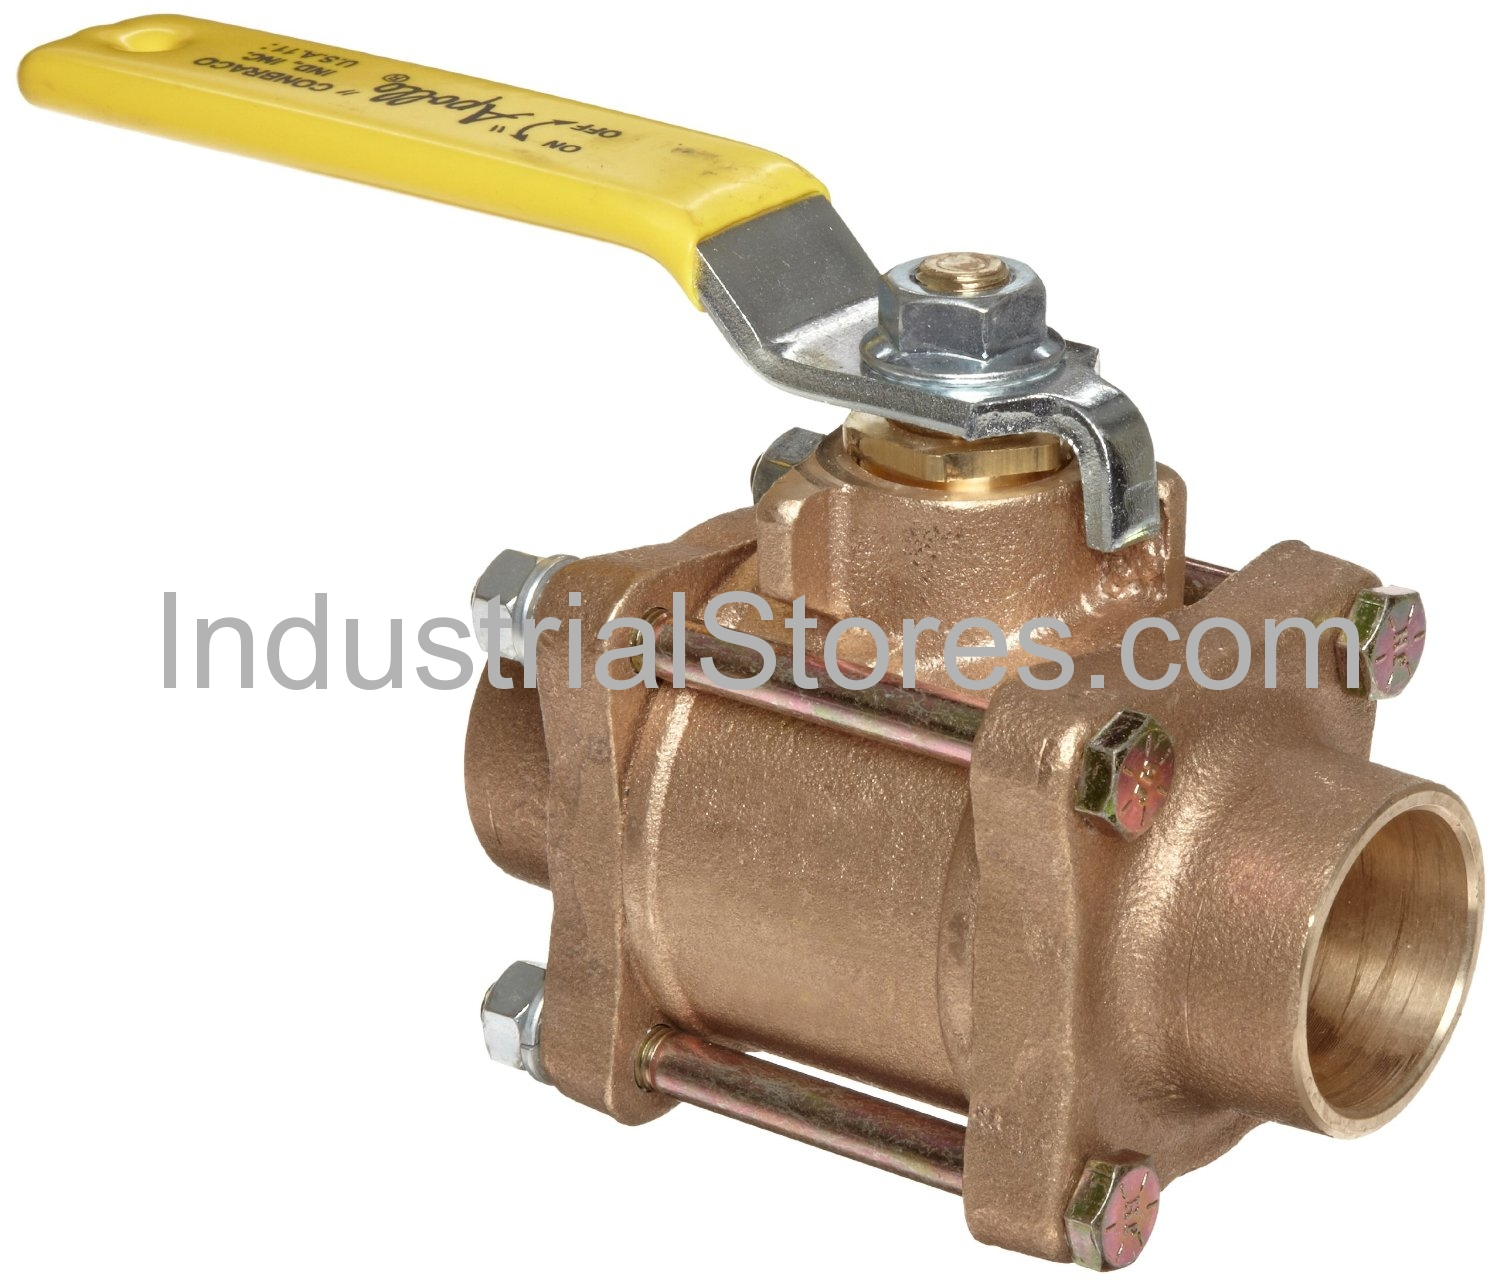 "Conbraco 82-207-01 Bronze 3-Piece Full-Port Solder End Ball Valve 1-1/2"" Solder End 600psig WOG Cold Non-Shock 150psig Saturated Steam"